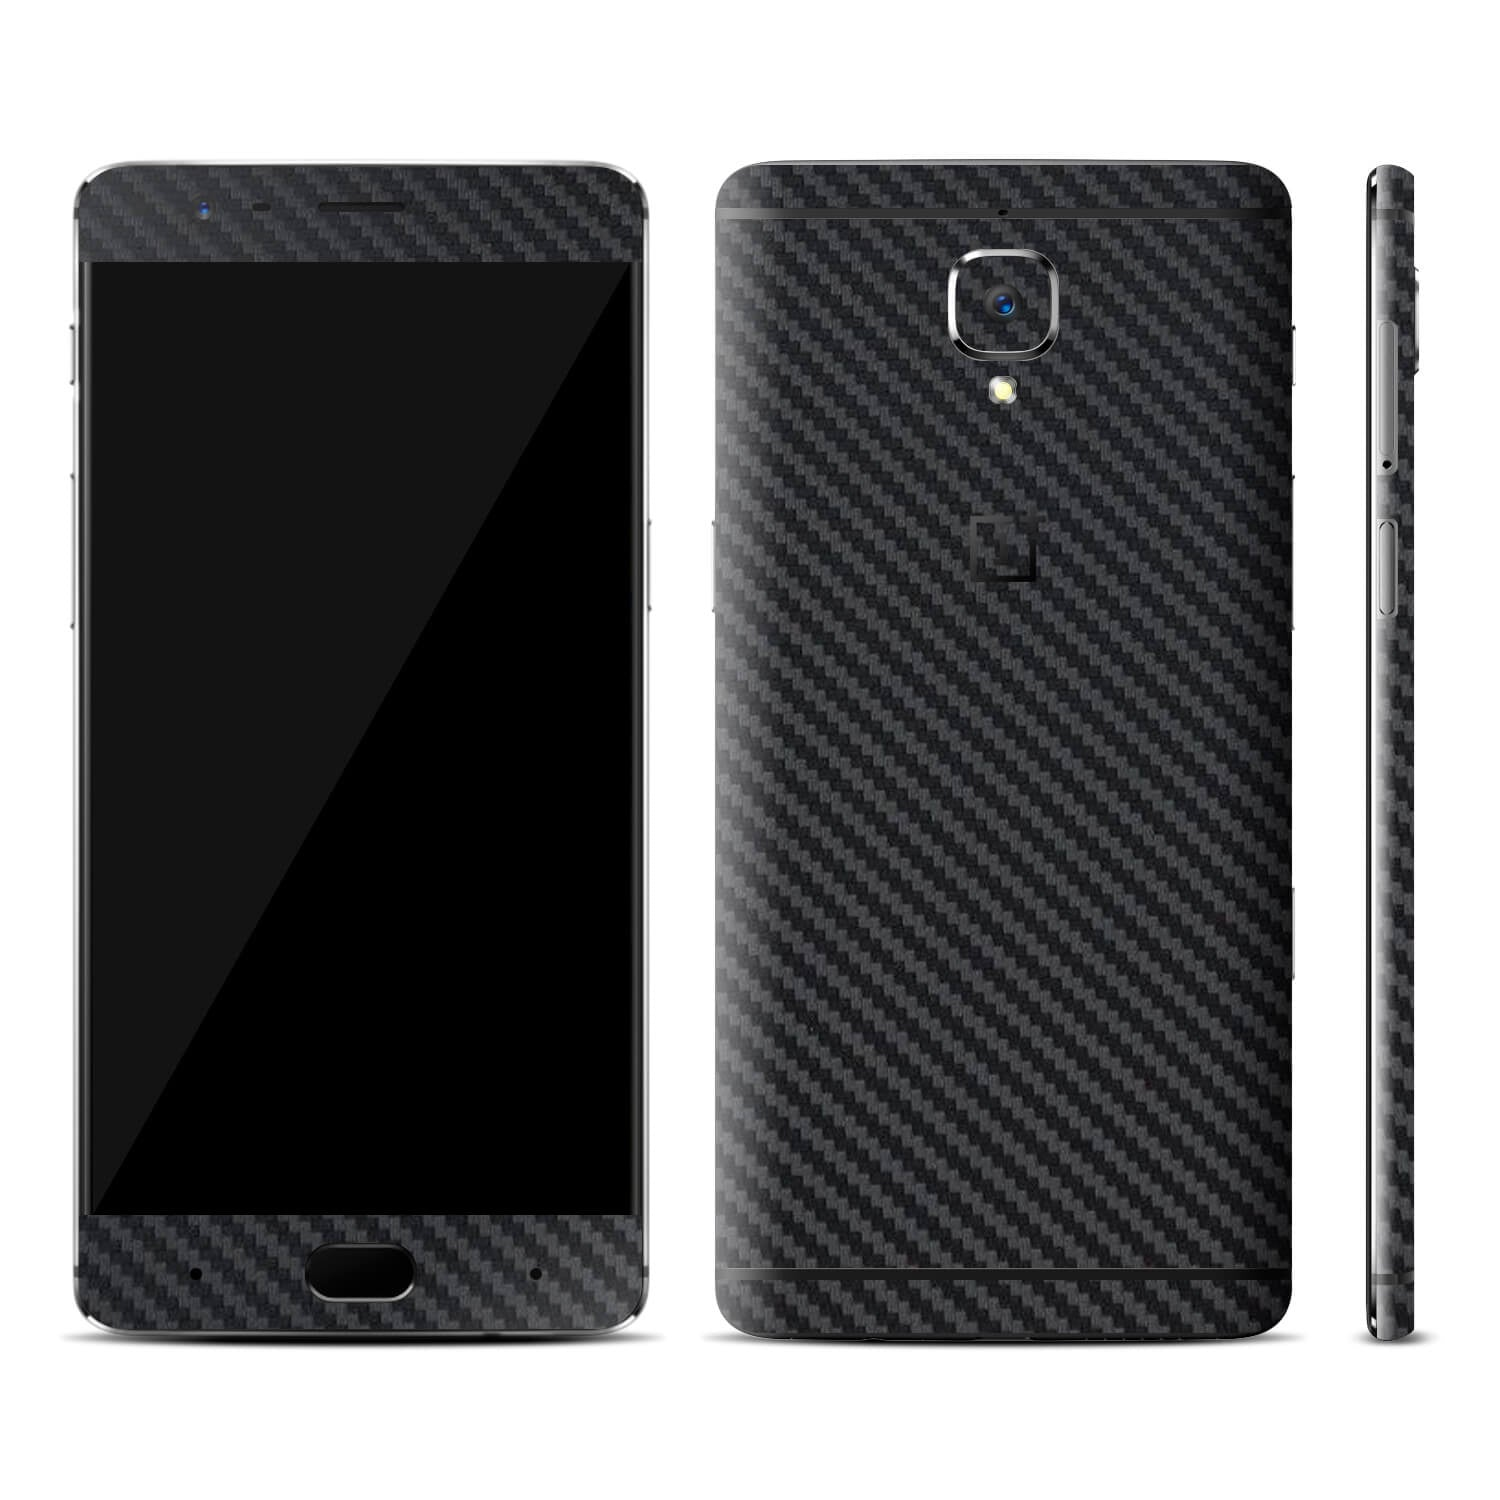 huge selection of 90dec 2e12f OnePlus 3T Skins